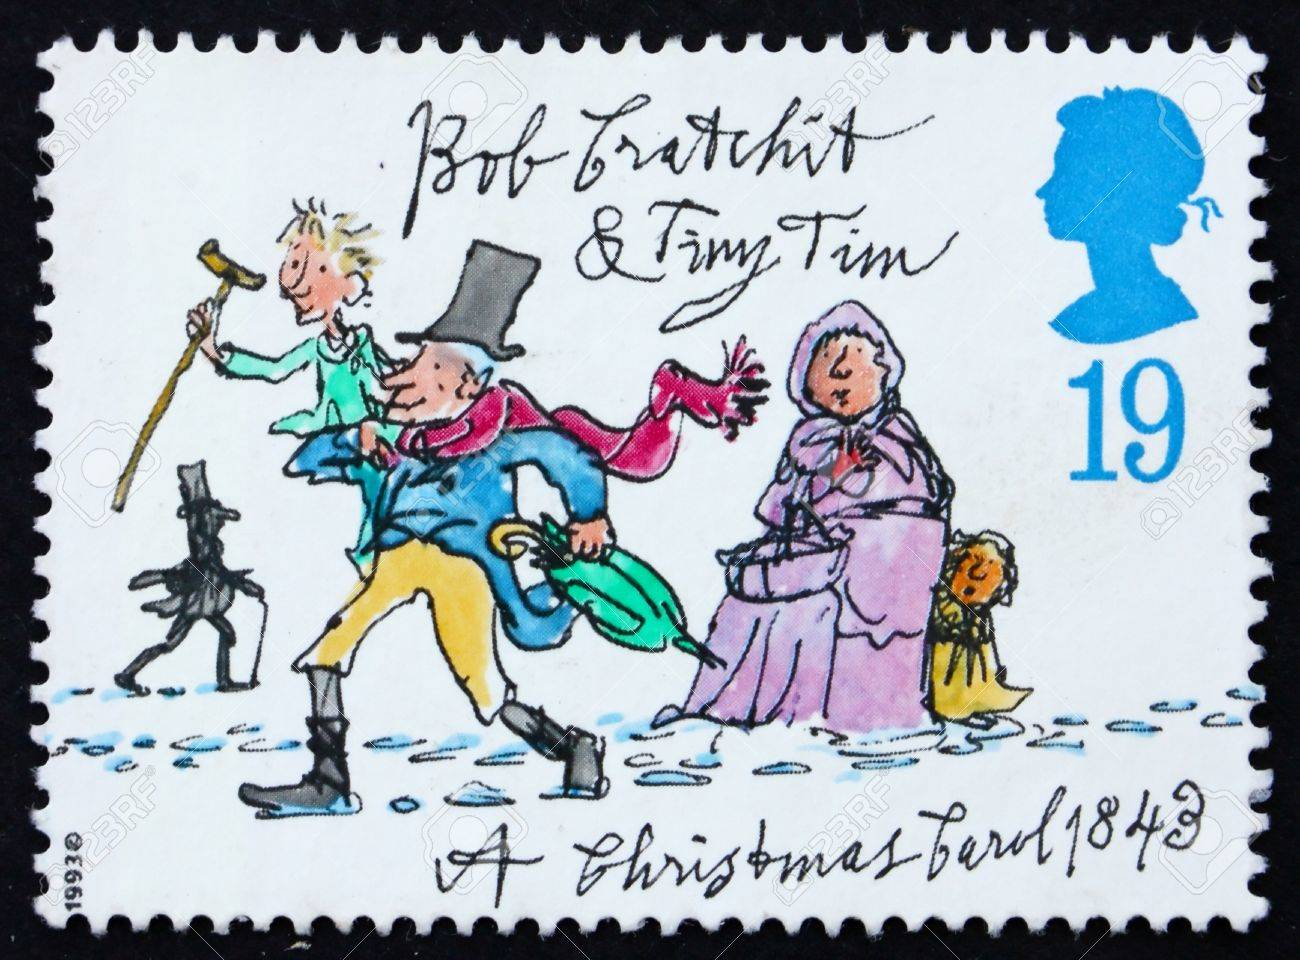 GREAT BRITAIN - CIRCA 1993: a stamp printed in the Great Britain shows Tiny Tim and Bob Cratchit, Christmas carol by Charles Dickens, circa 1993 Stock Photo - 11455623